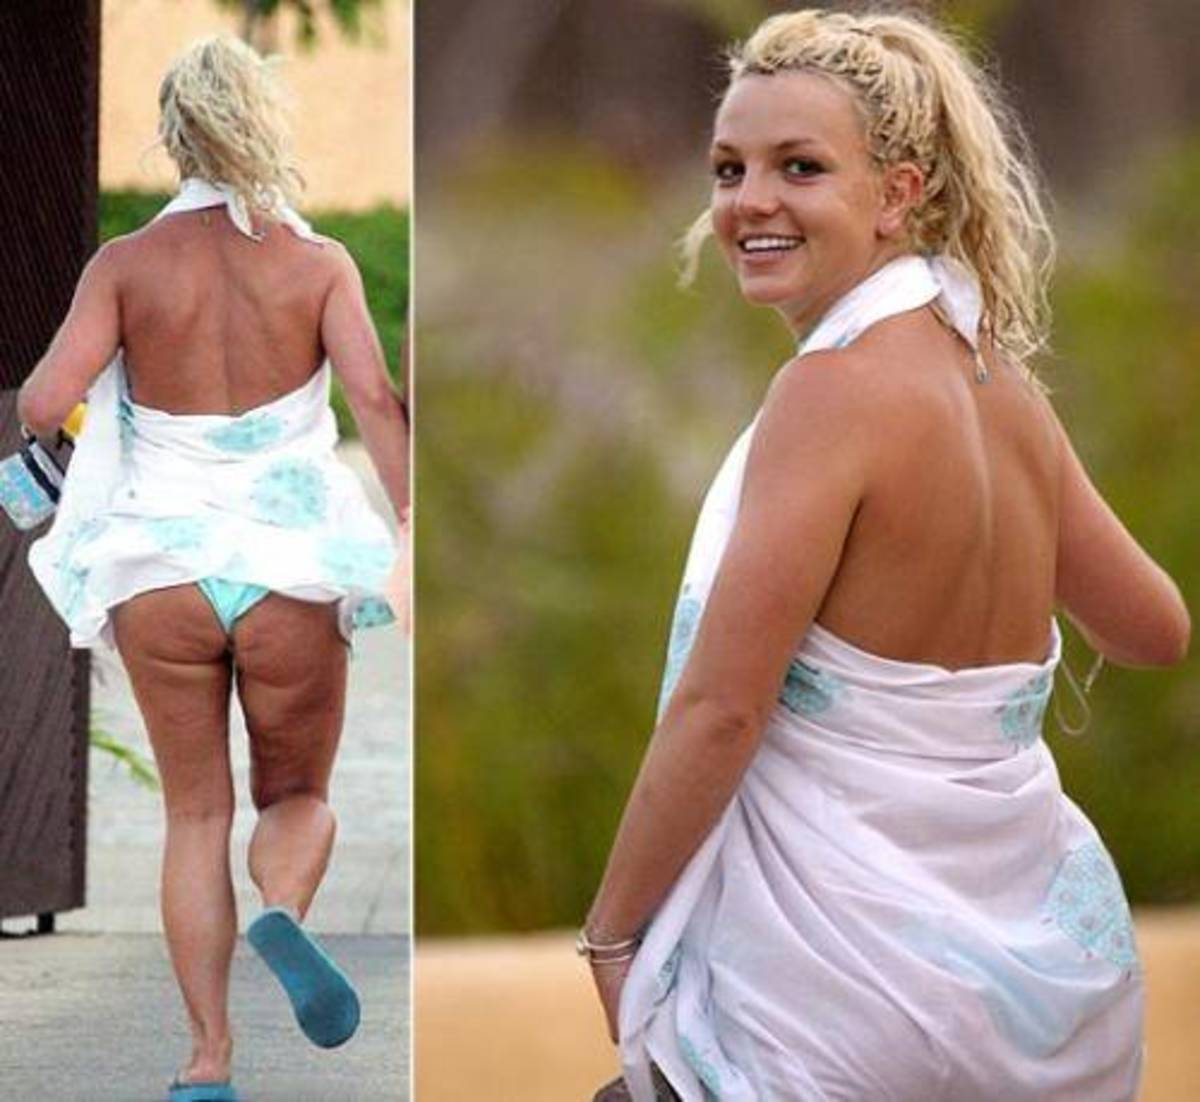 Even Brittney Spears Has Cellulite - How to get rid of cellulite